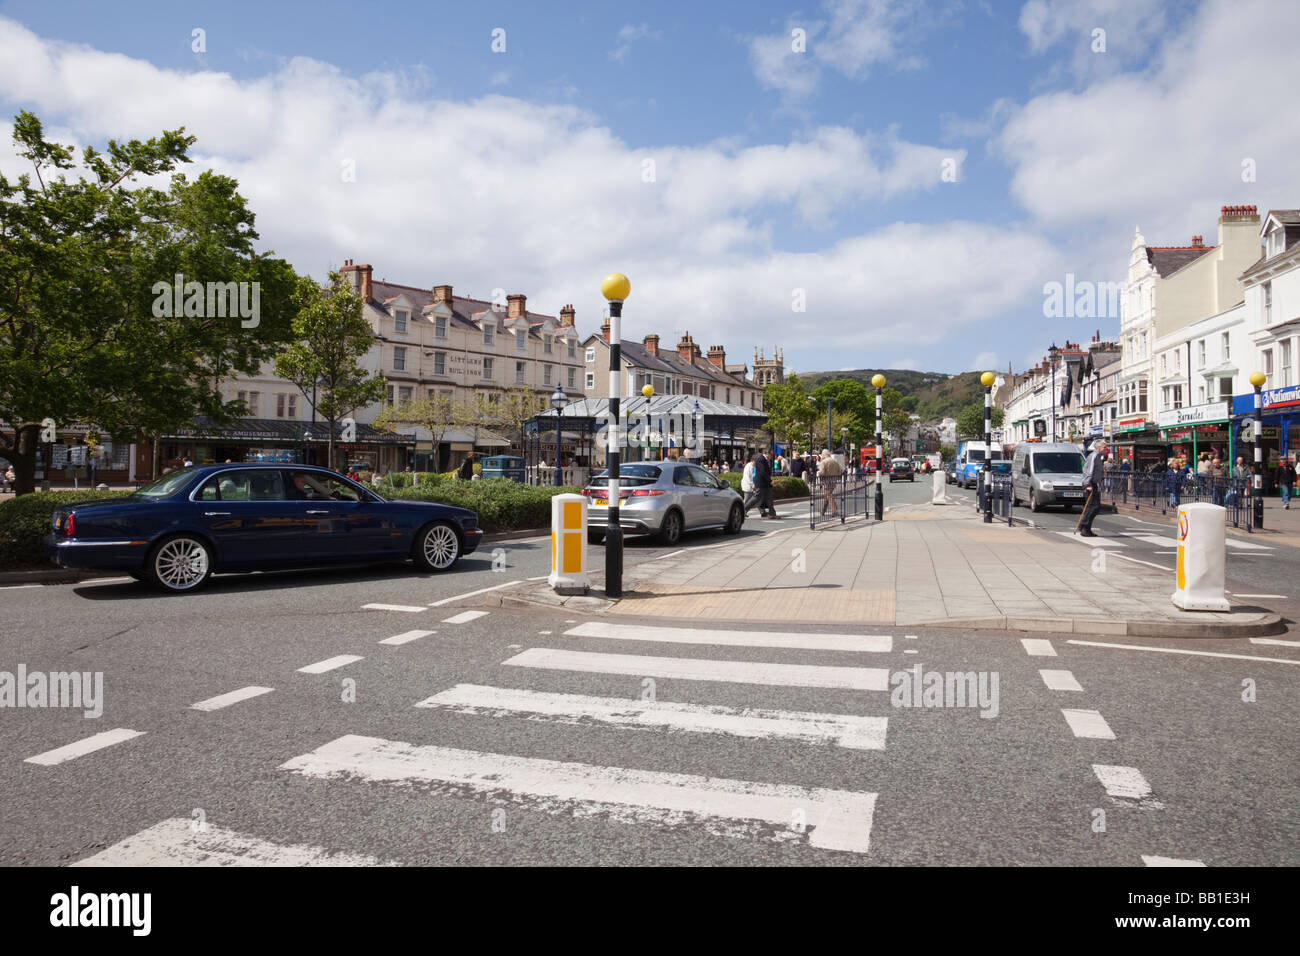 Mostyn Street Llandudno Conwy North Wales UK Pedestrian crossing and view down the street - Stock Image